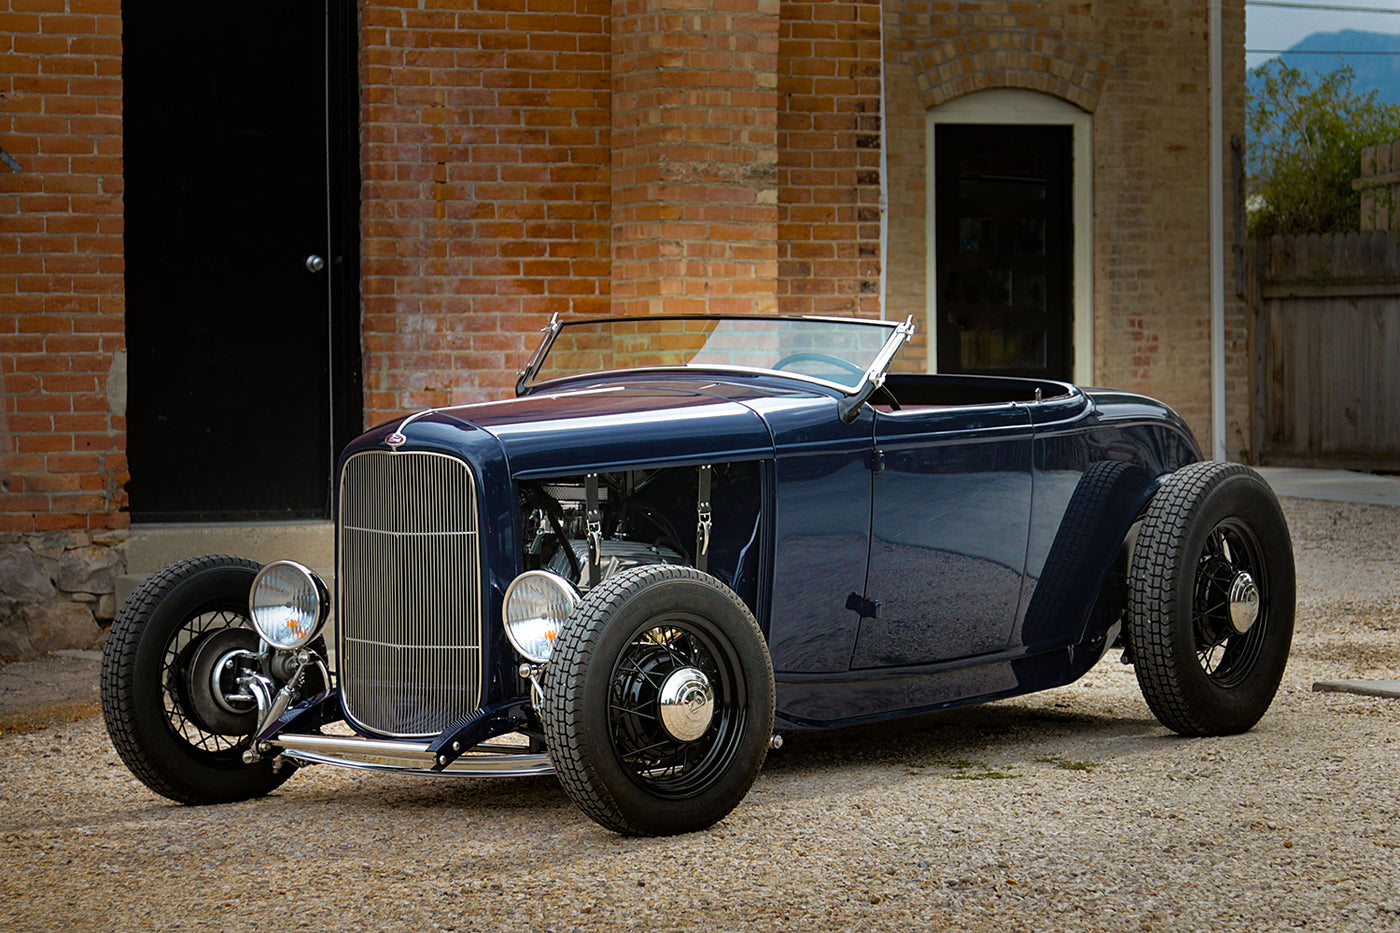 Fabric Car Seat Cleaner >> FLAT OUT SPEED SHOP - '32 ROADSTER - Relicate LLC